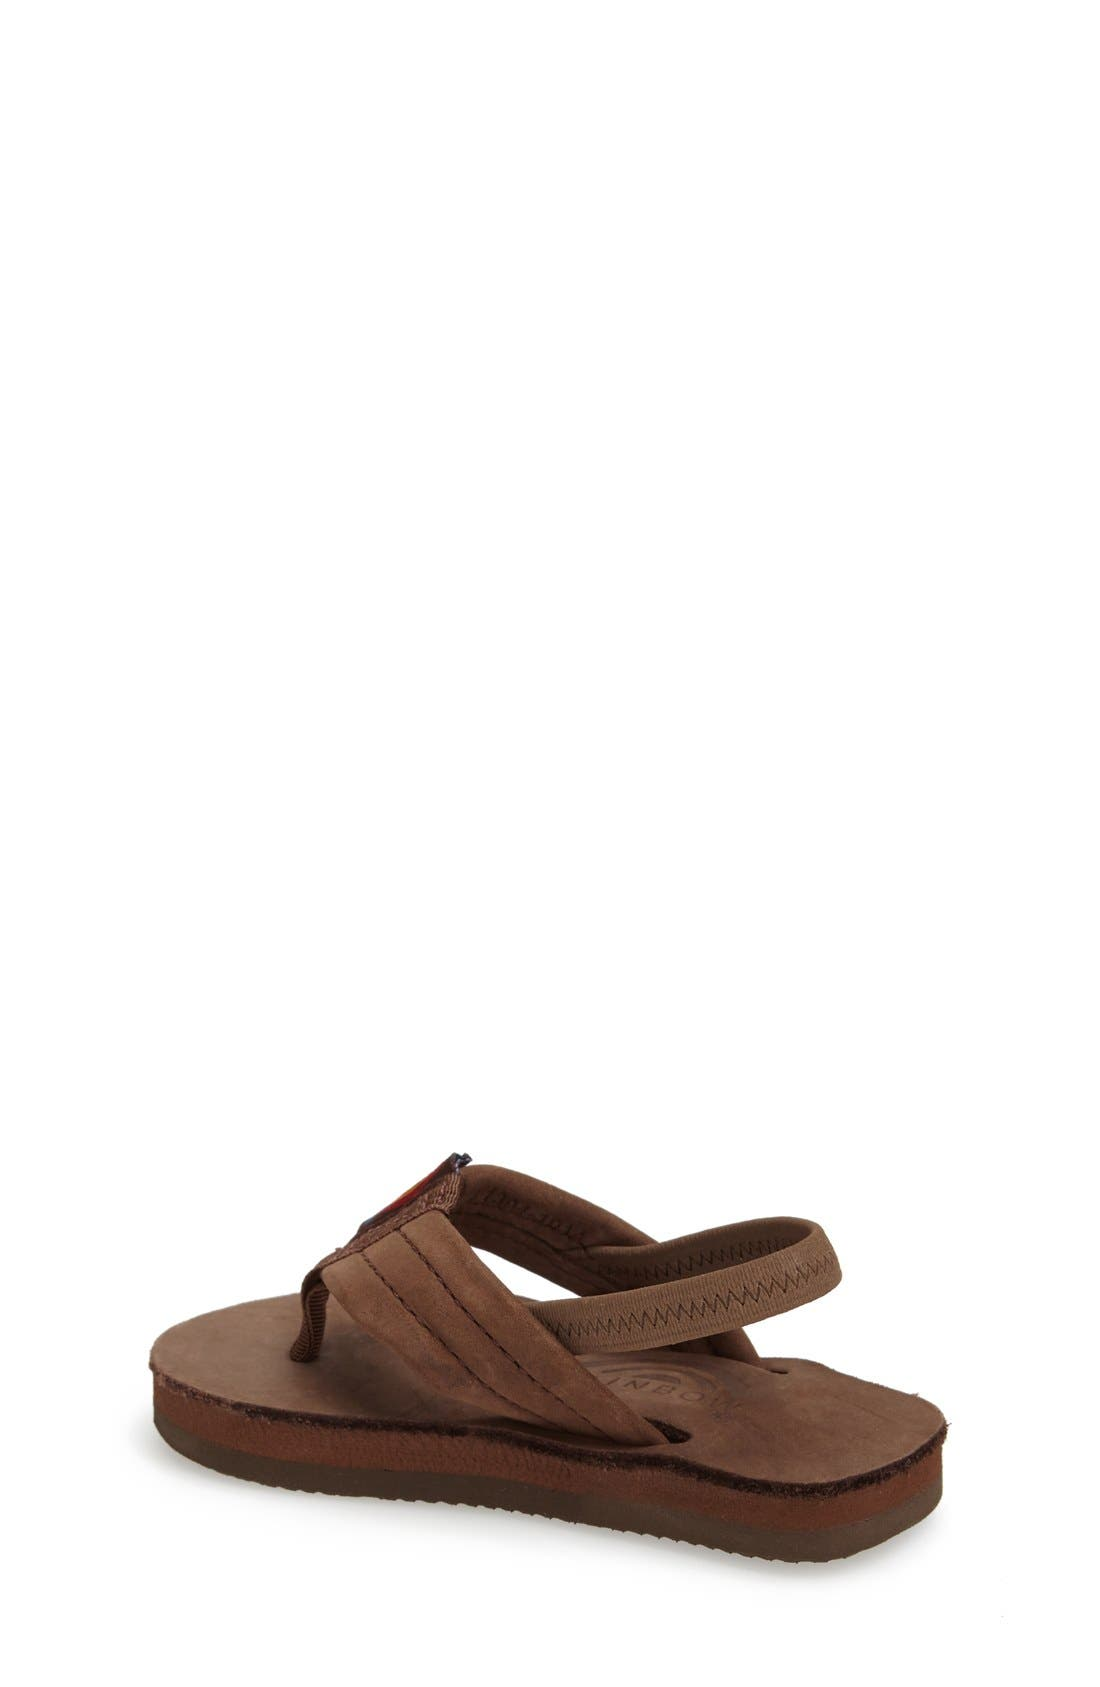 Leather Sandal,                             Alternate thumbnail 8, color,                             EXPRESSO